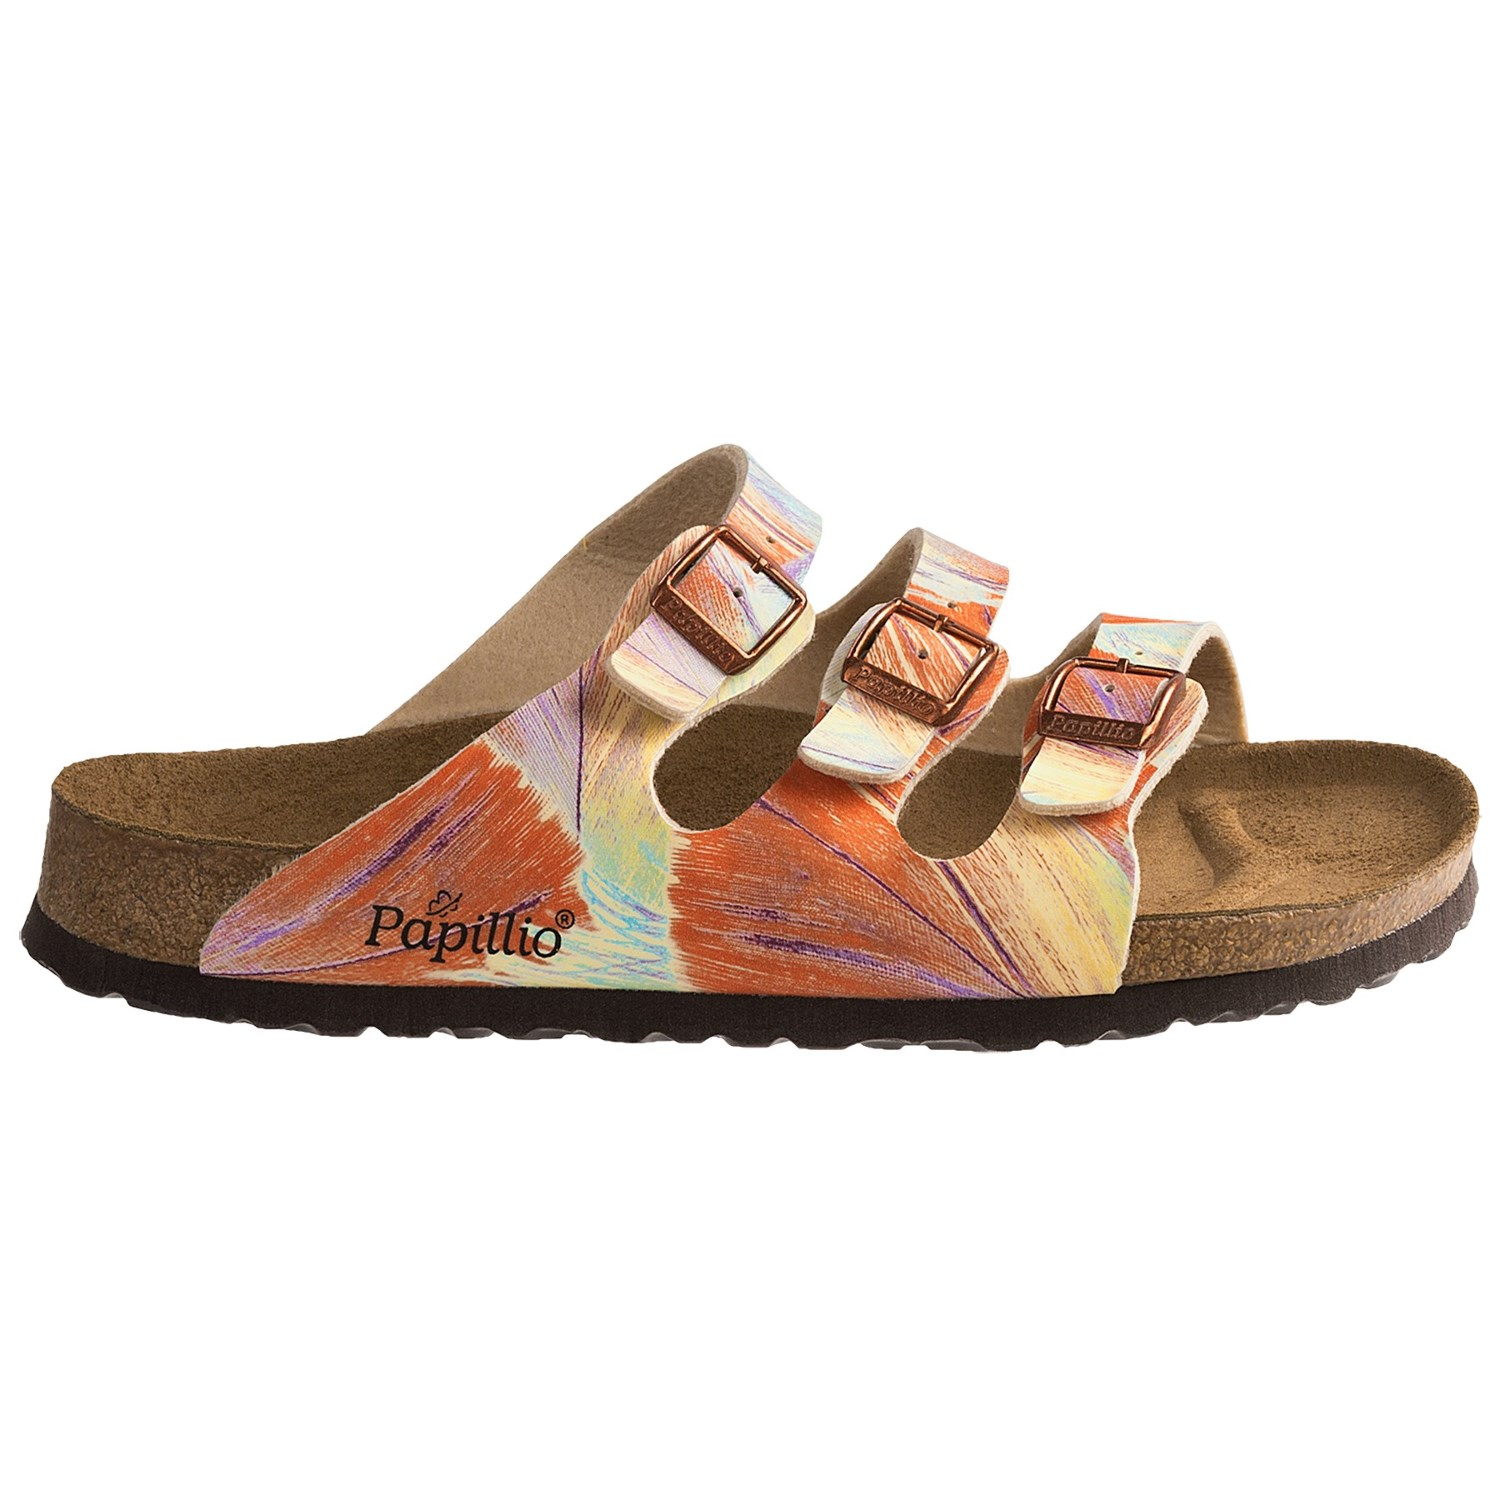 Birking 's by Birkenstock Mahe Hologram Sandals Page 1 QVC